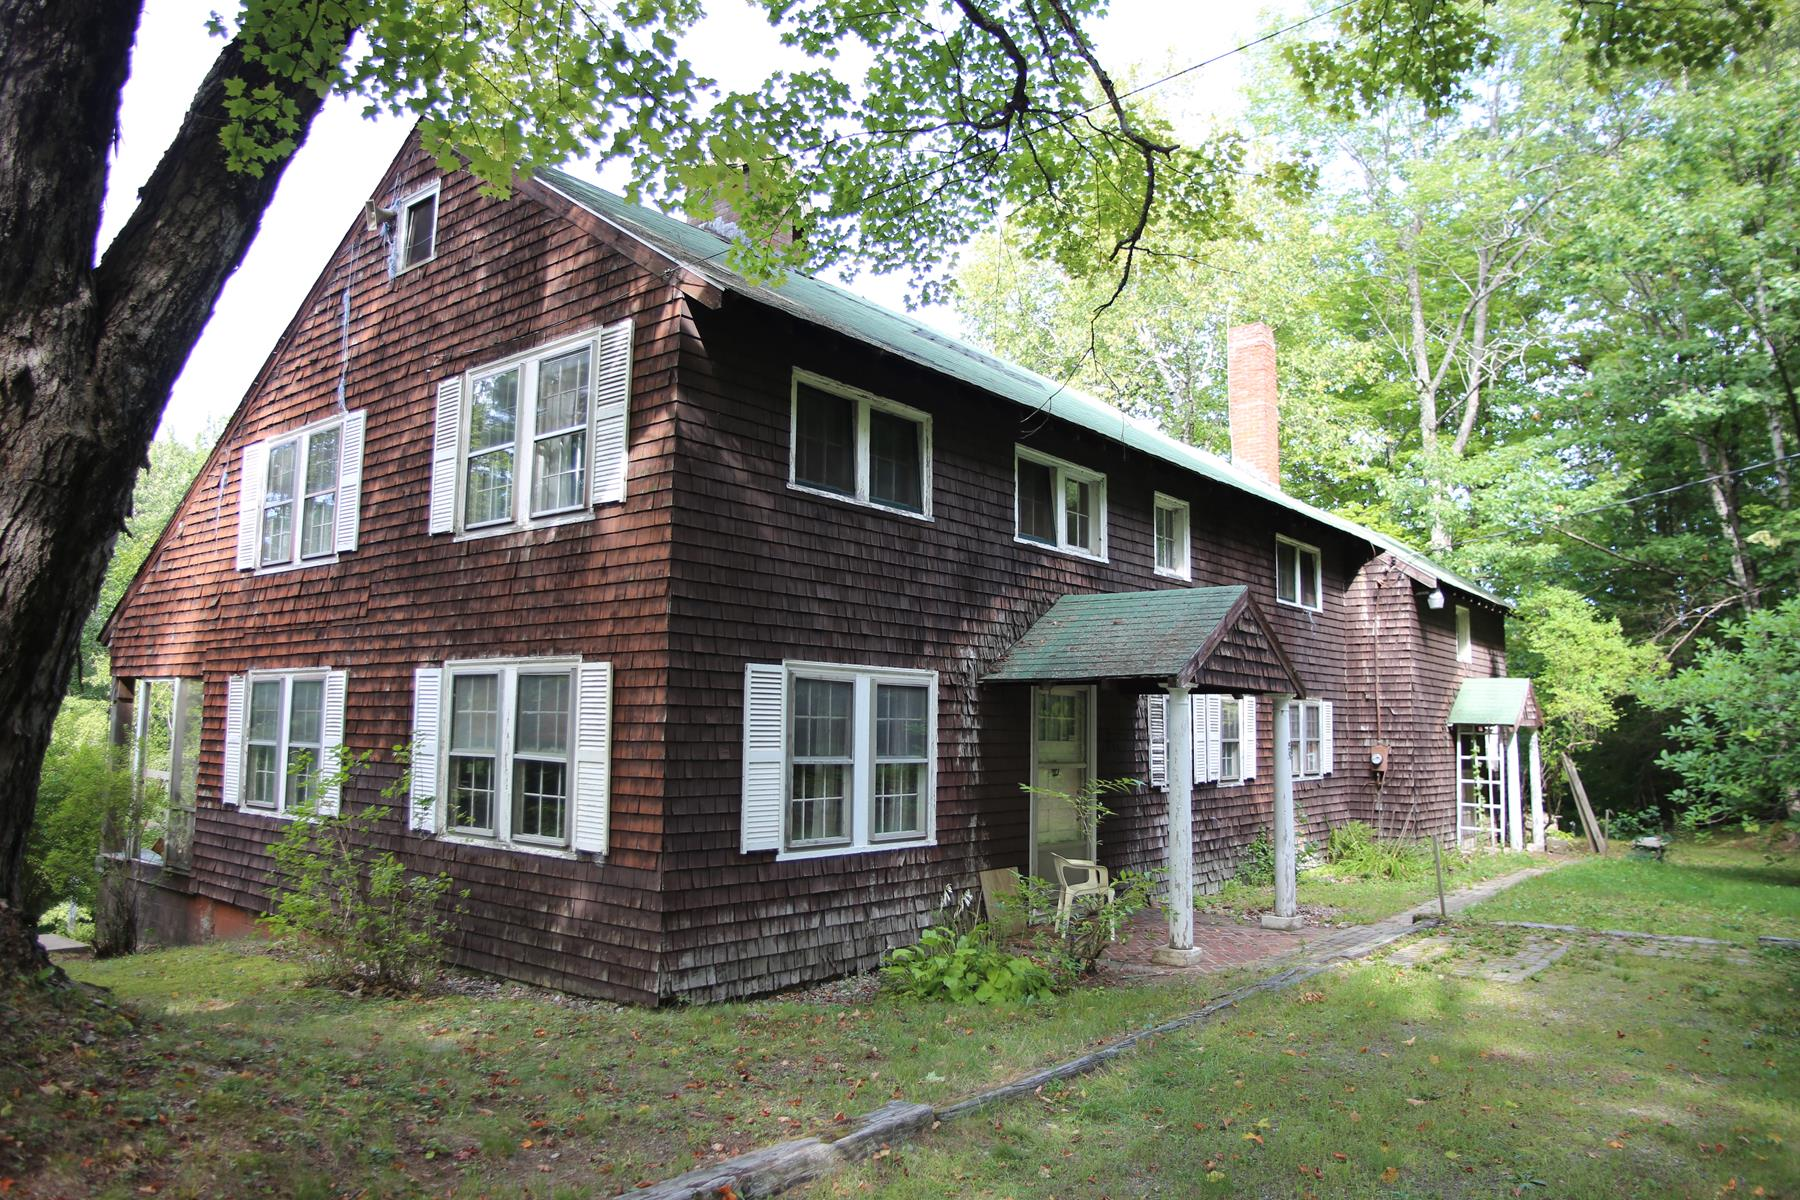 Maison unifamiliale pour l Vente à 59 Lynch Road, Hill 59 Lynch Rd Hill, New Hampshire, 03243 États-Unis